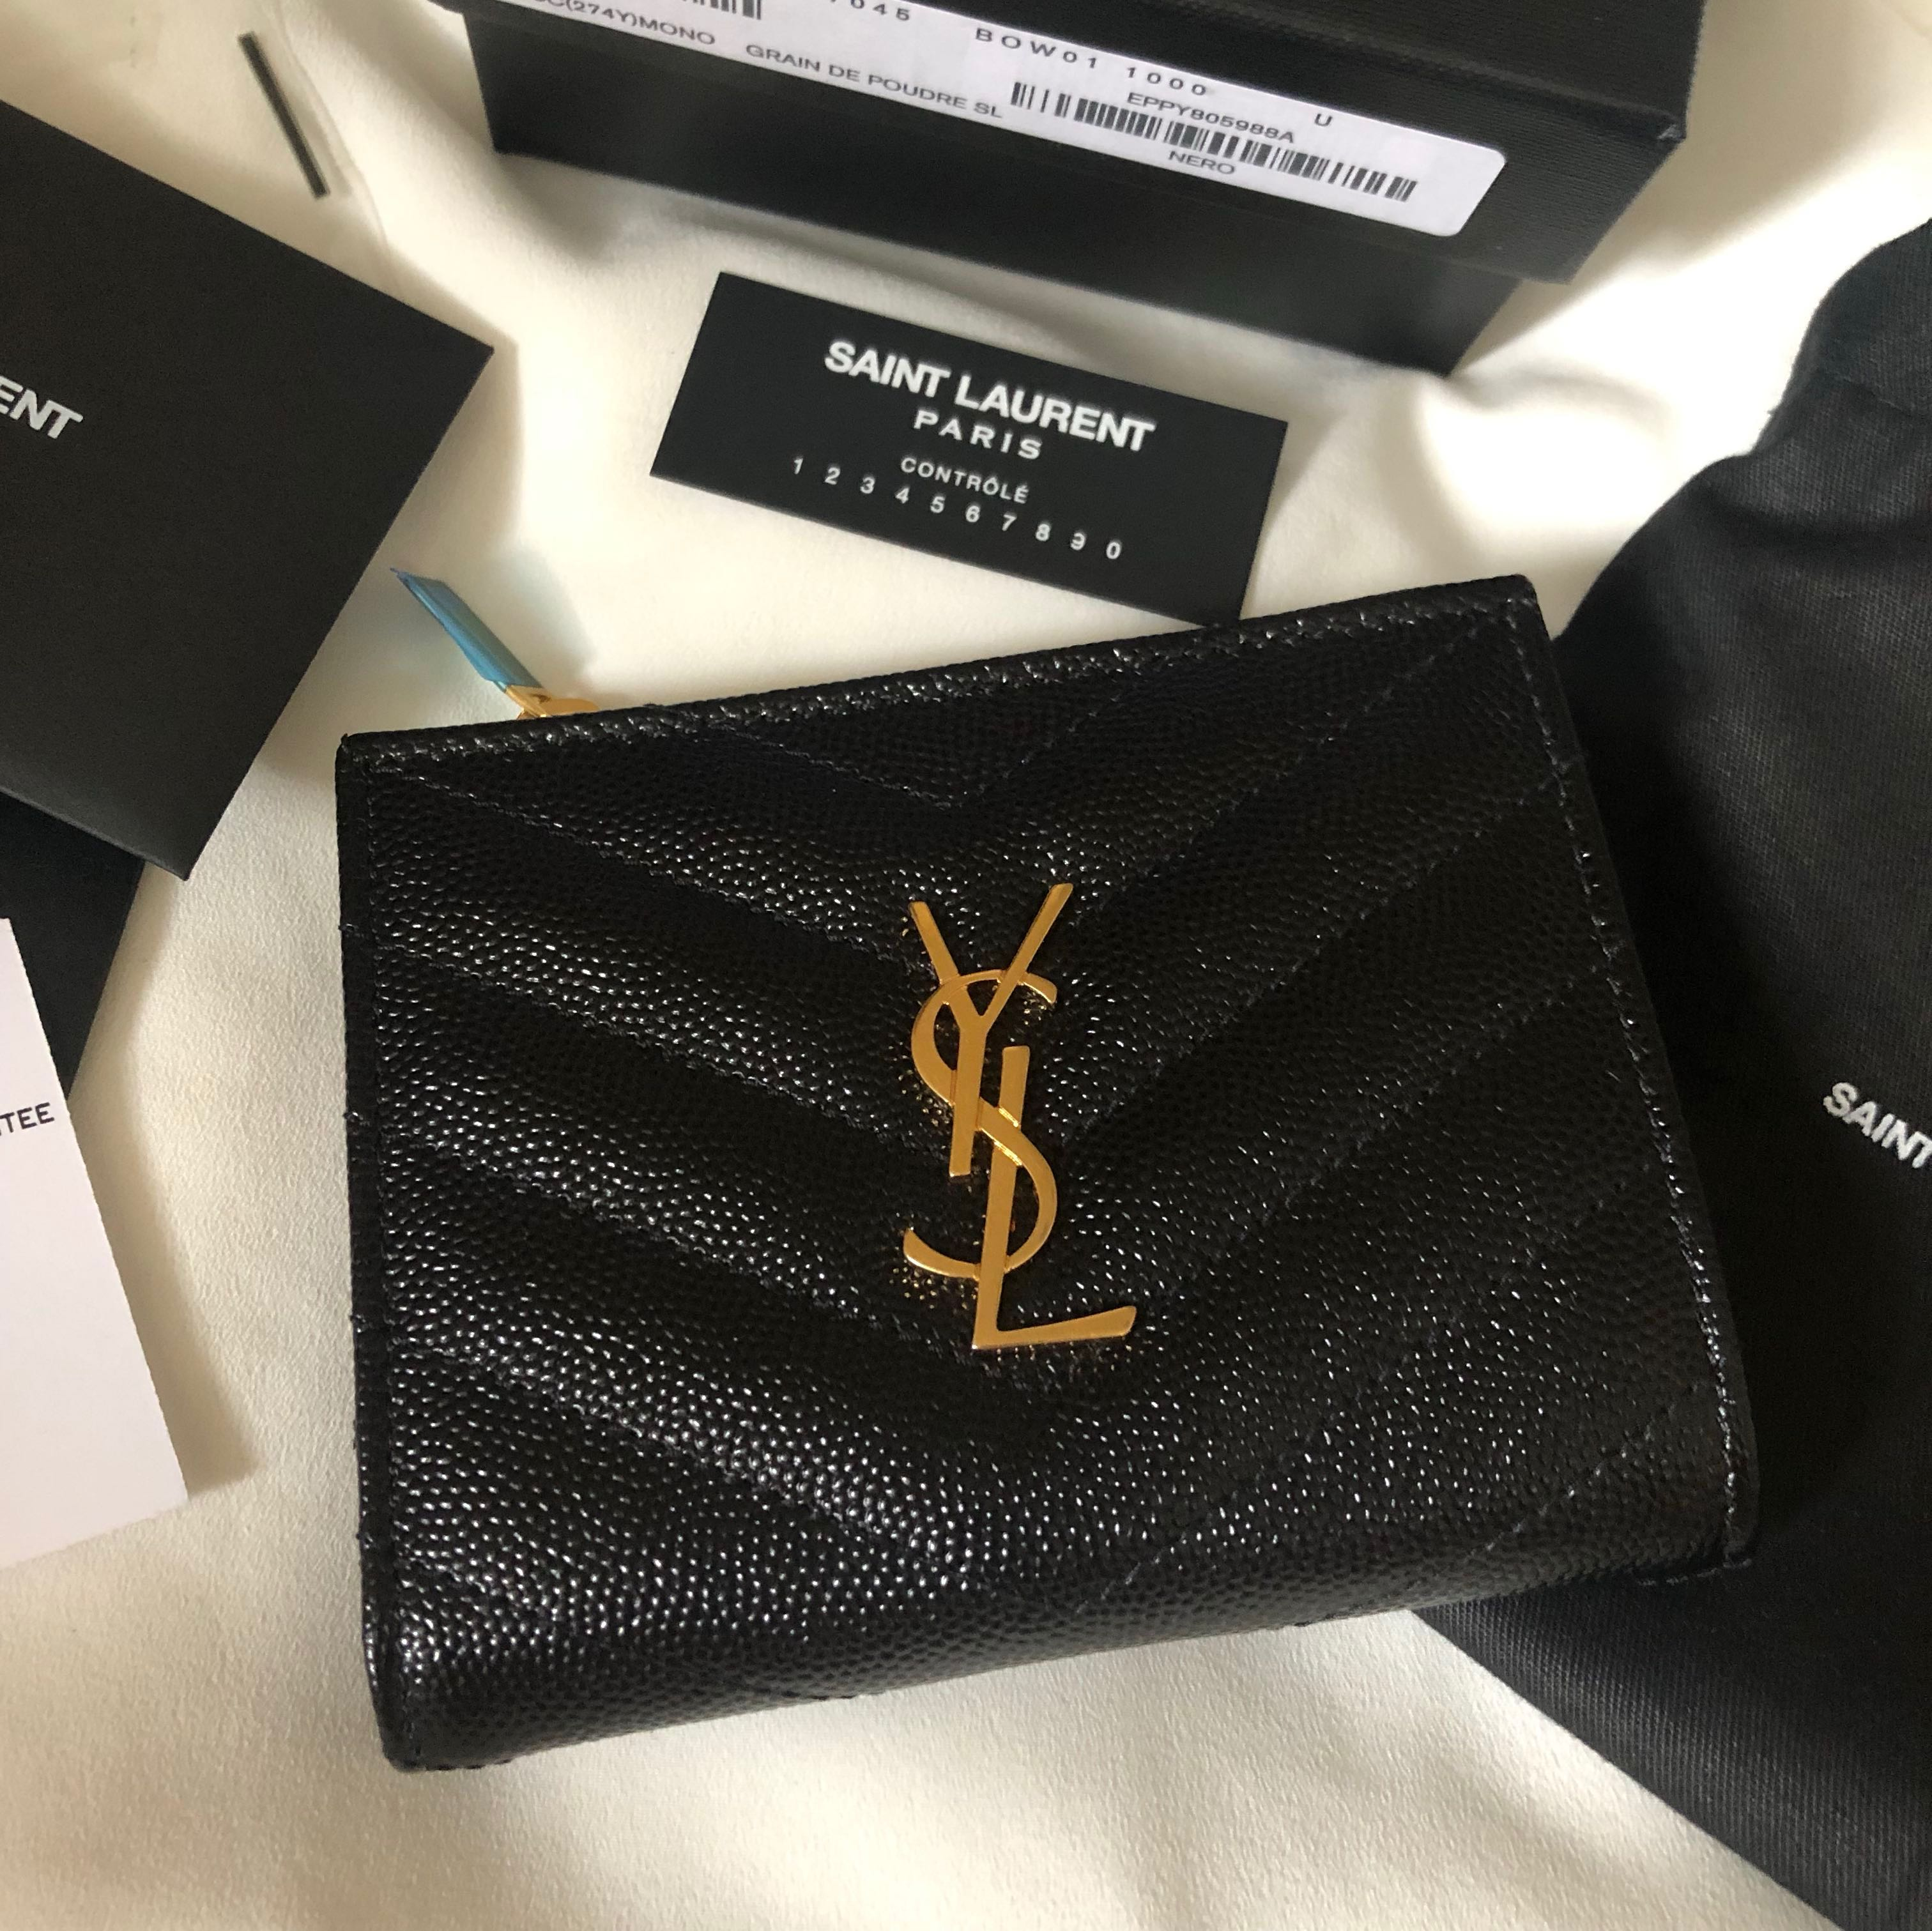 af56484810e YSL Wallet MONOGRAM ZIPPED CARD CASE IN GRAIN DE POUDRE EMBOSSED LEATHER  銀包100% New and 100% Authentic, Luxury, Bags & Wallets on Carousell